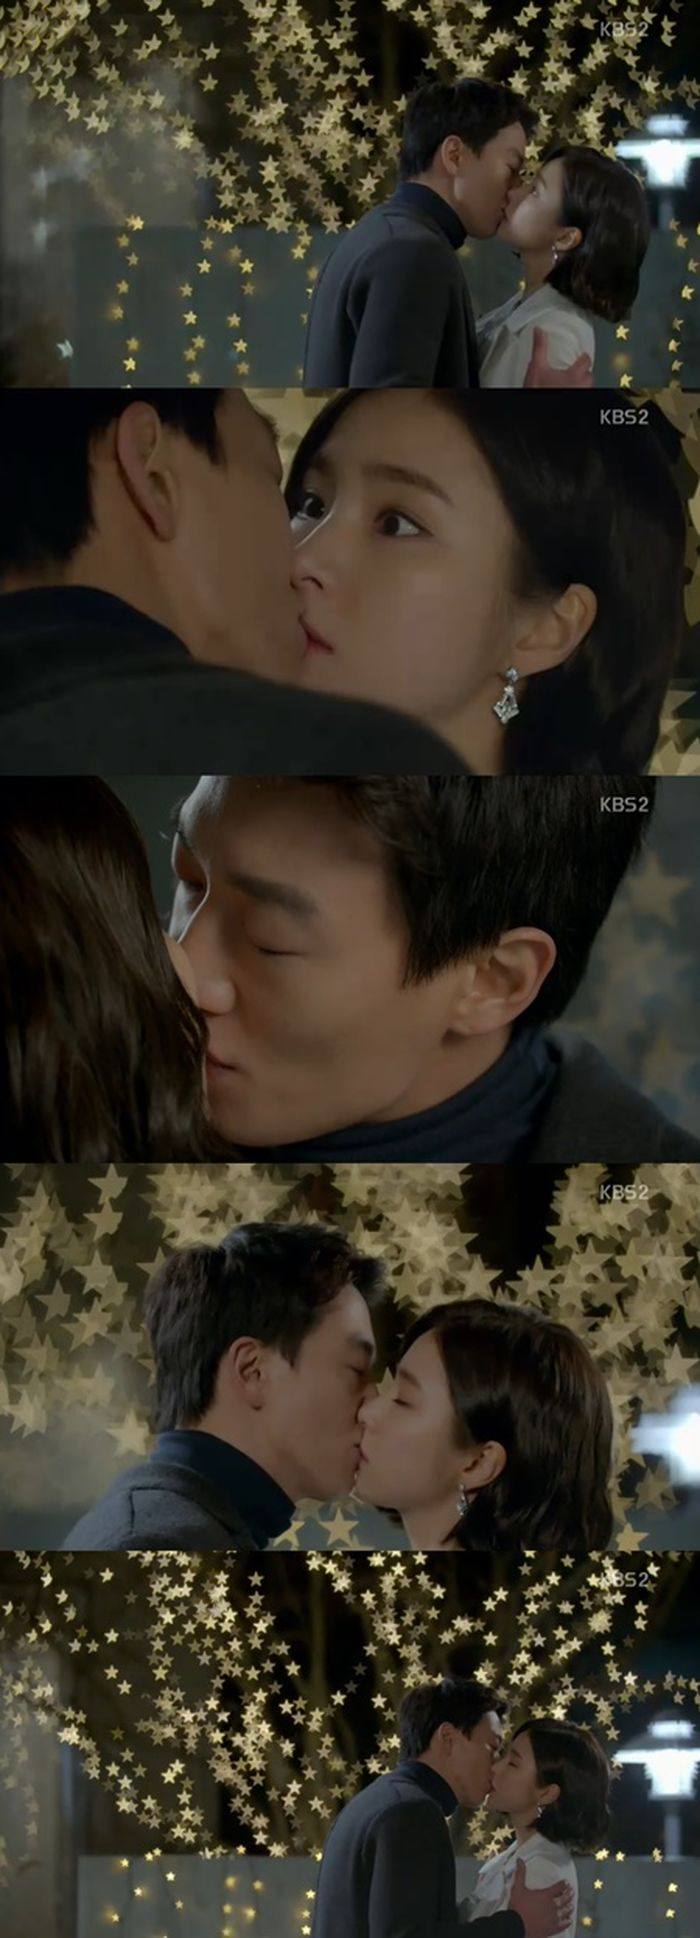 Kim Rae Won And Shin Se Kyung Set The Mood For Their Kiss Scene In